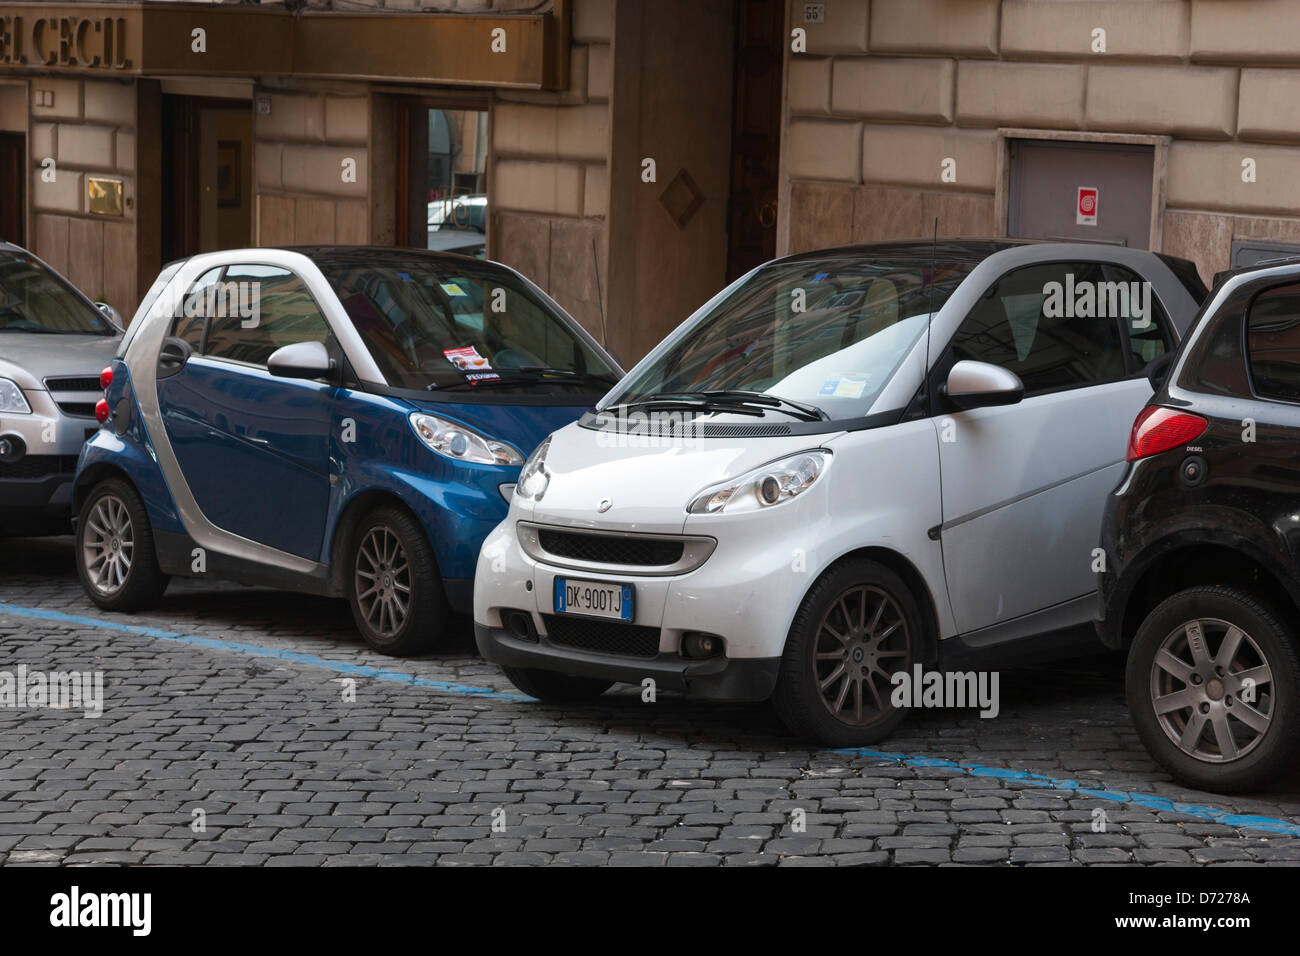 Car Parking In Roma